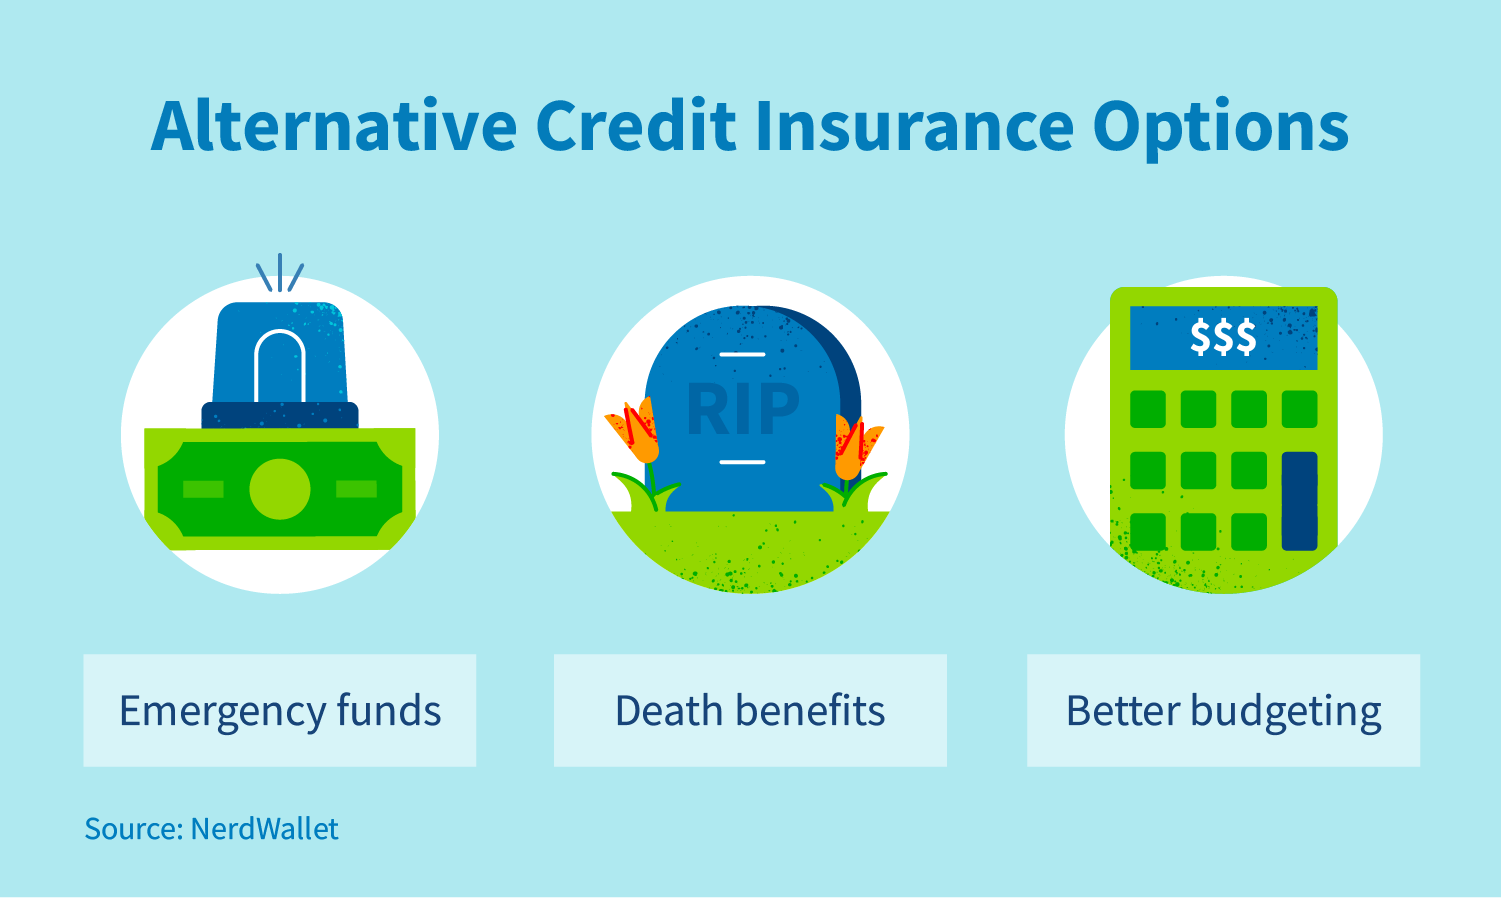 Alternative credit insurance options: Emergency funds. Death benefits. Better budgeting. Source: NerdWallet.